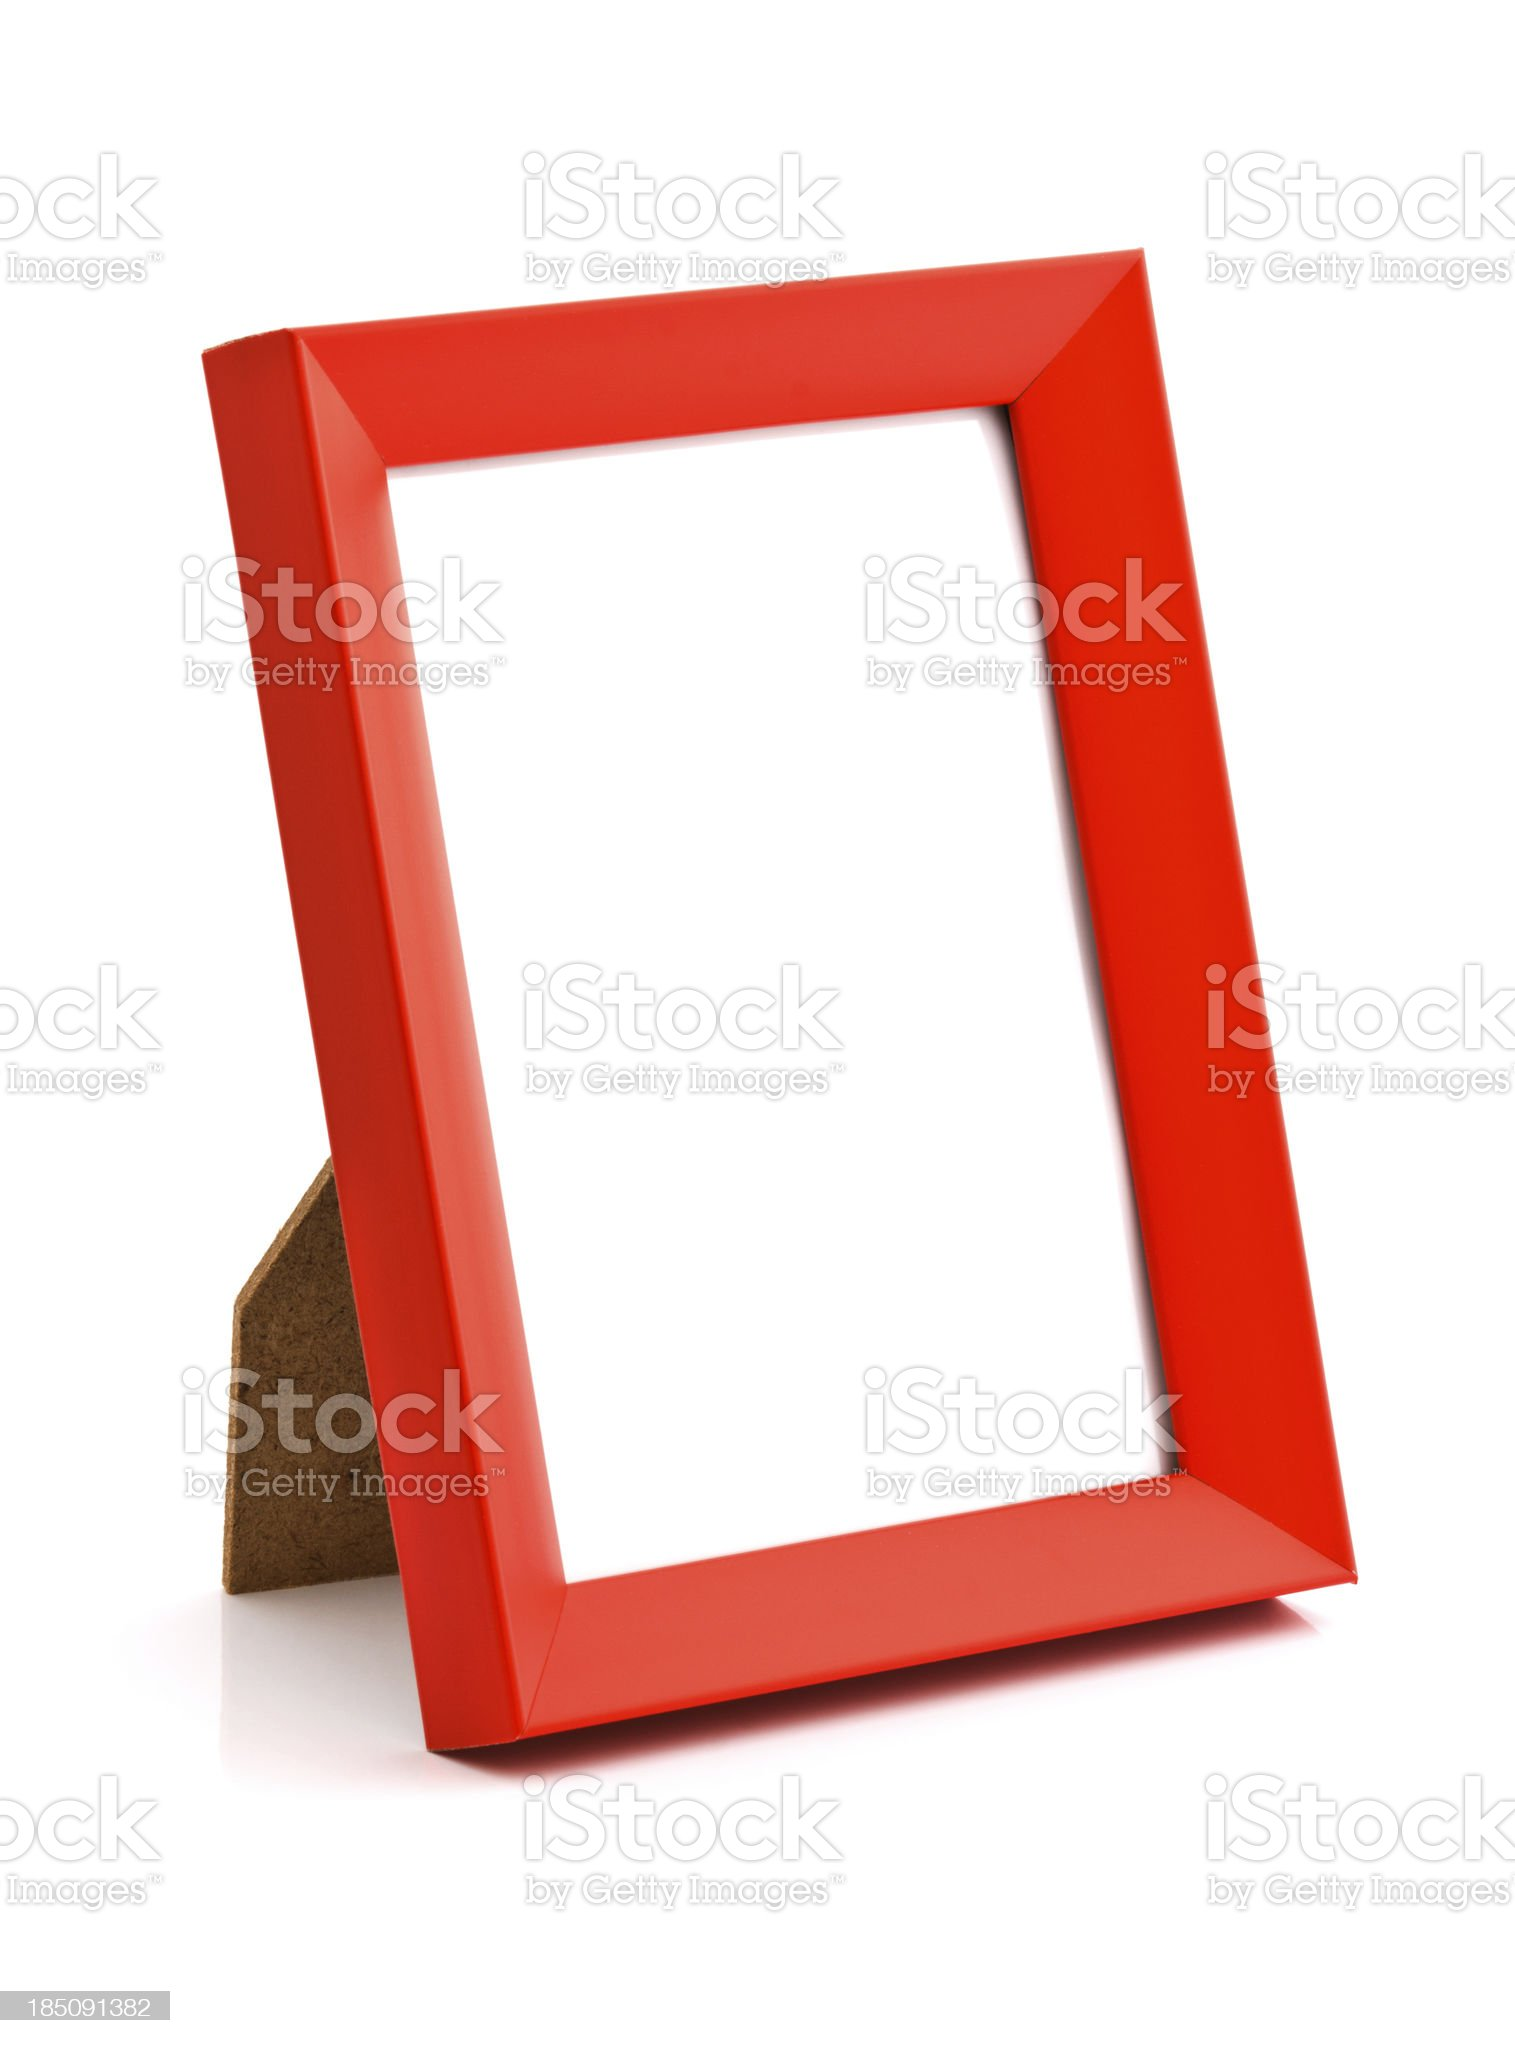 Red photo frame royalty-free stock photo